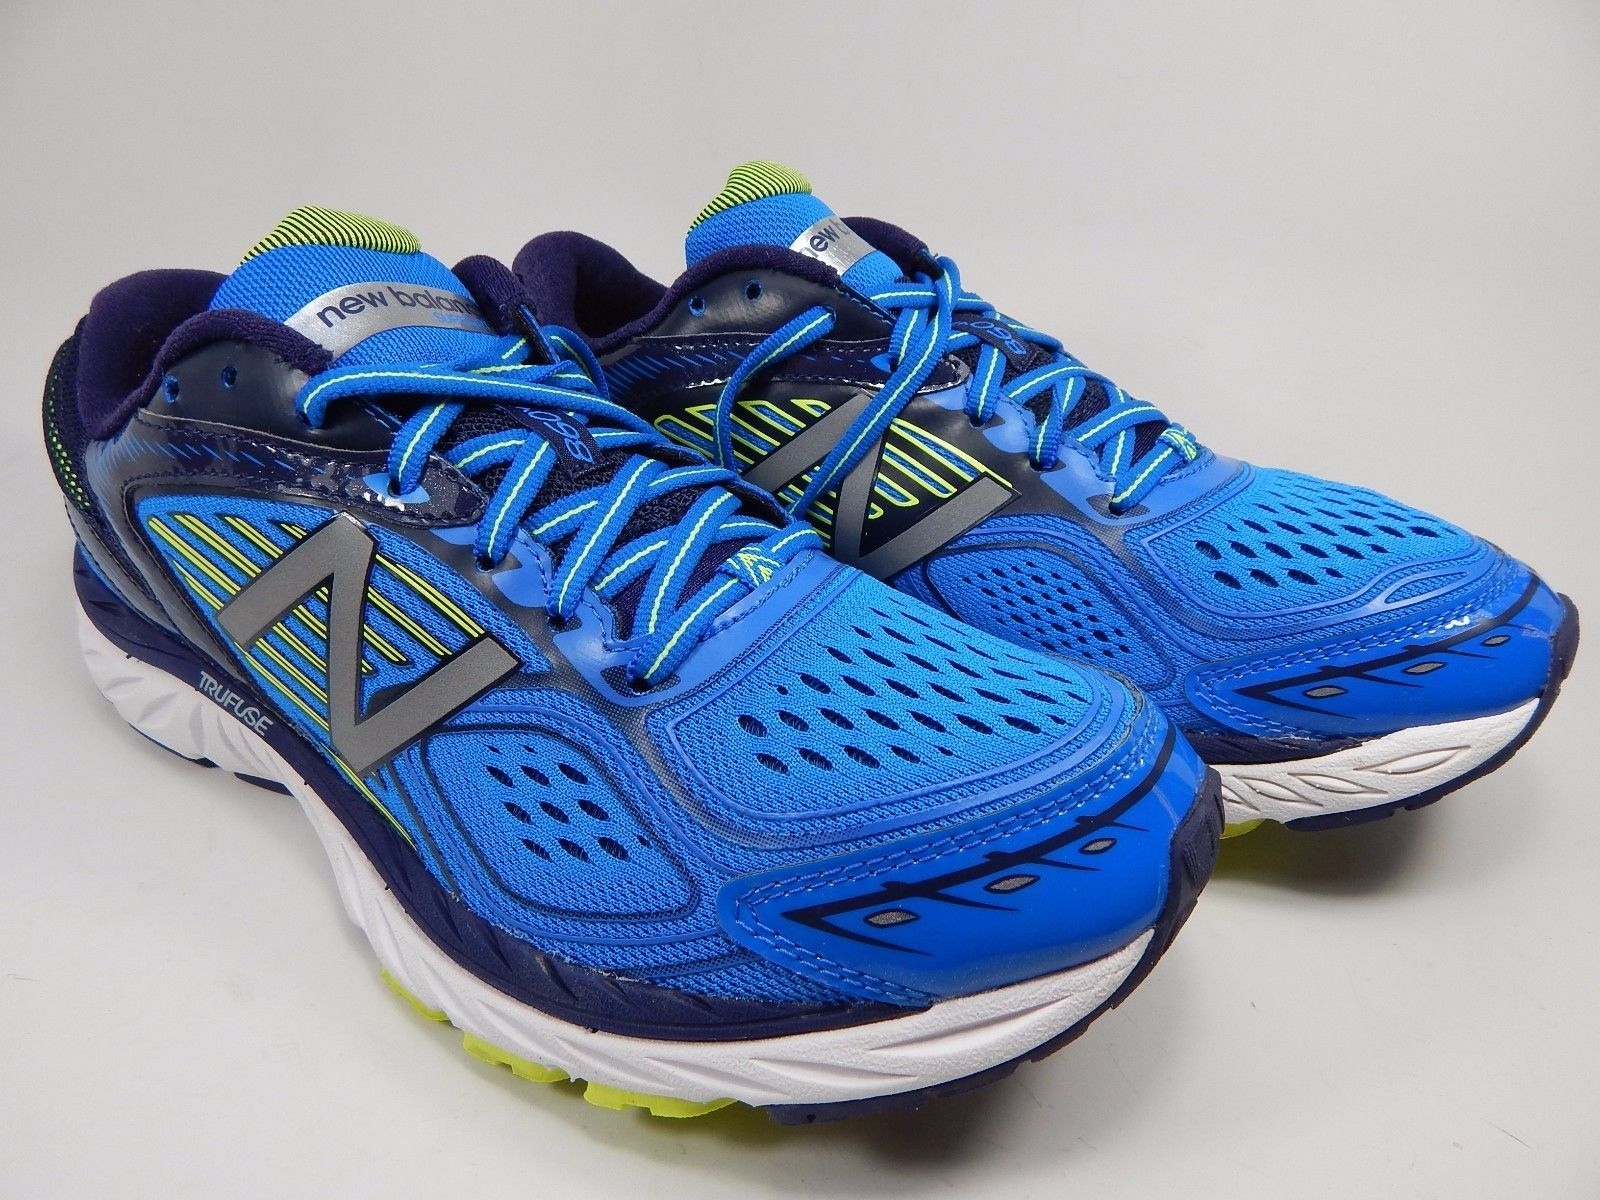 New Balance 860 v7 Men's Running Shoes Size US 8.5 M (D) EU 42 Blue M860BY7